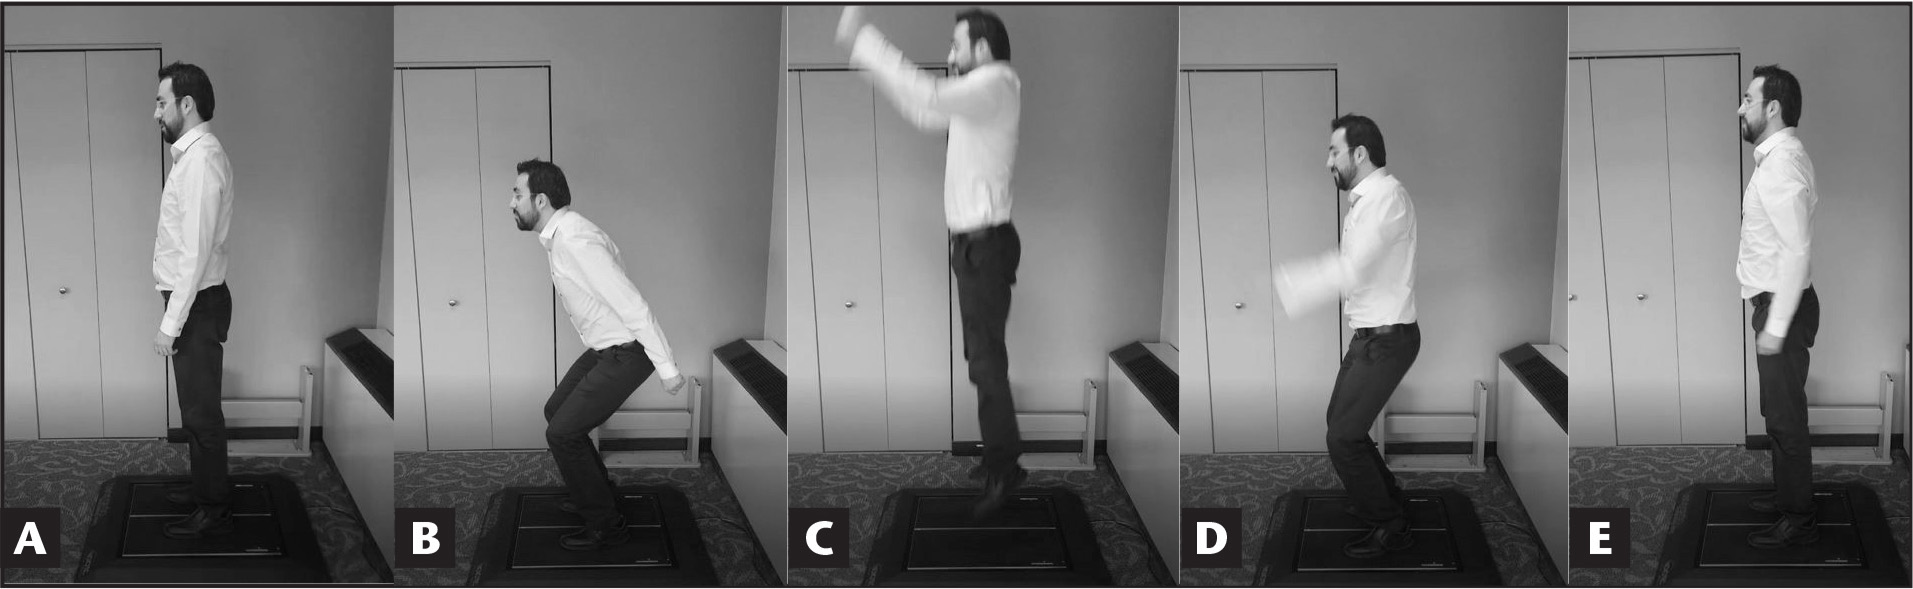 Sequence of a countermovement jump: (A) before the jump, the participant stands in an upright position on the force platform as still as possible; (B) the participant squats as quickly as possible before the jump; (C) the participant jumps as high as possible; (D) the participant begins the smooth landing stage; and (E) the participant stands up straight and as still as possible.